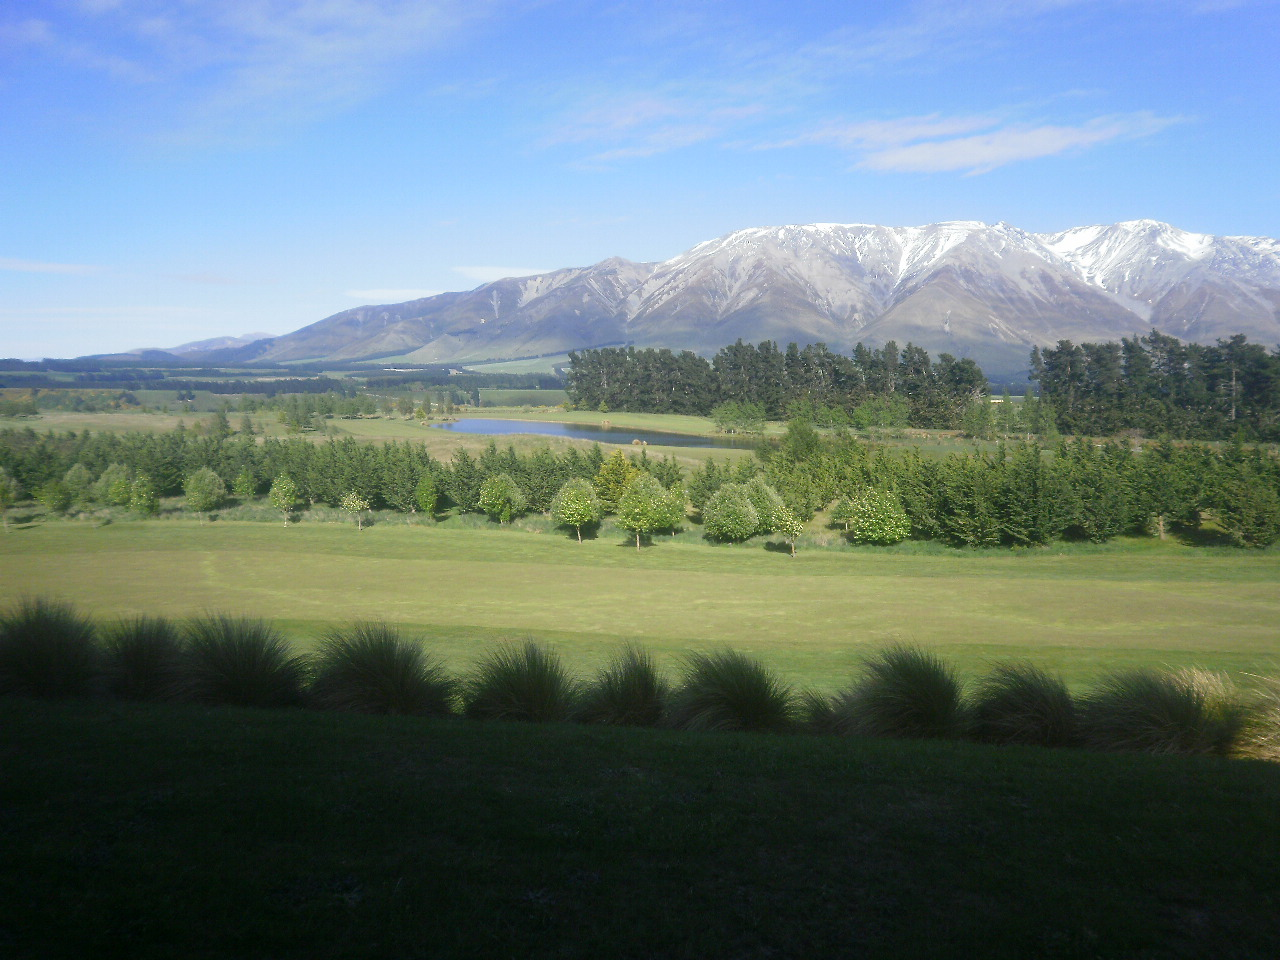 We are starting with a 7 day bus tripof the south island.